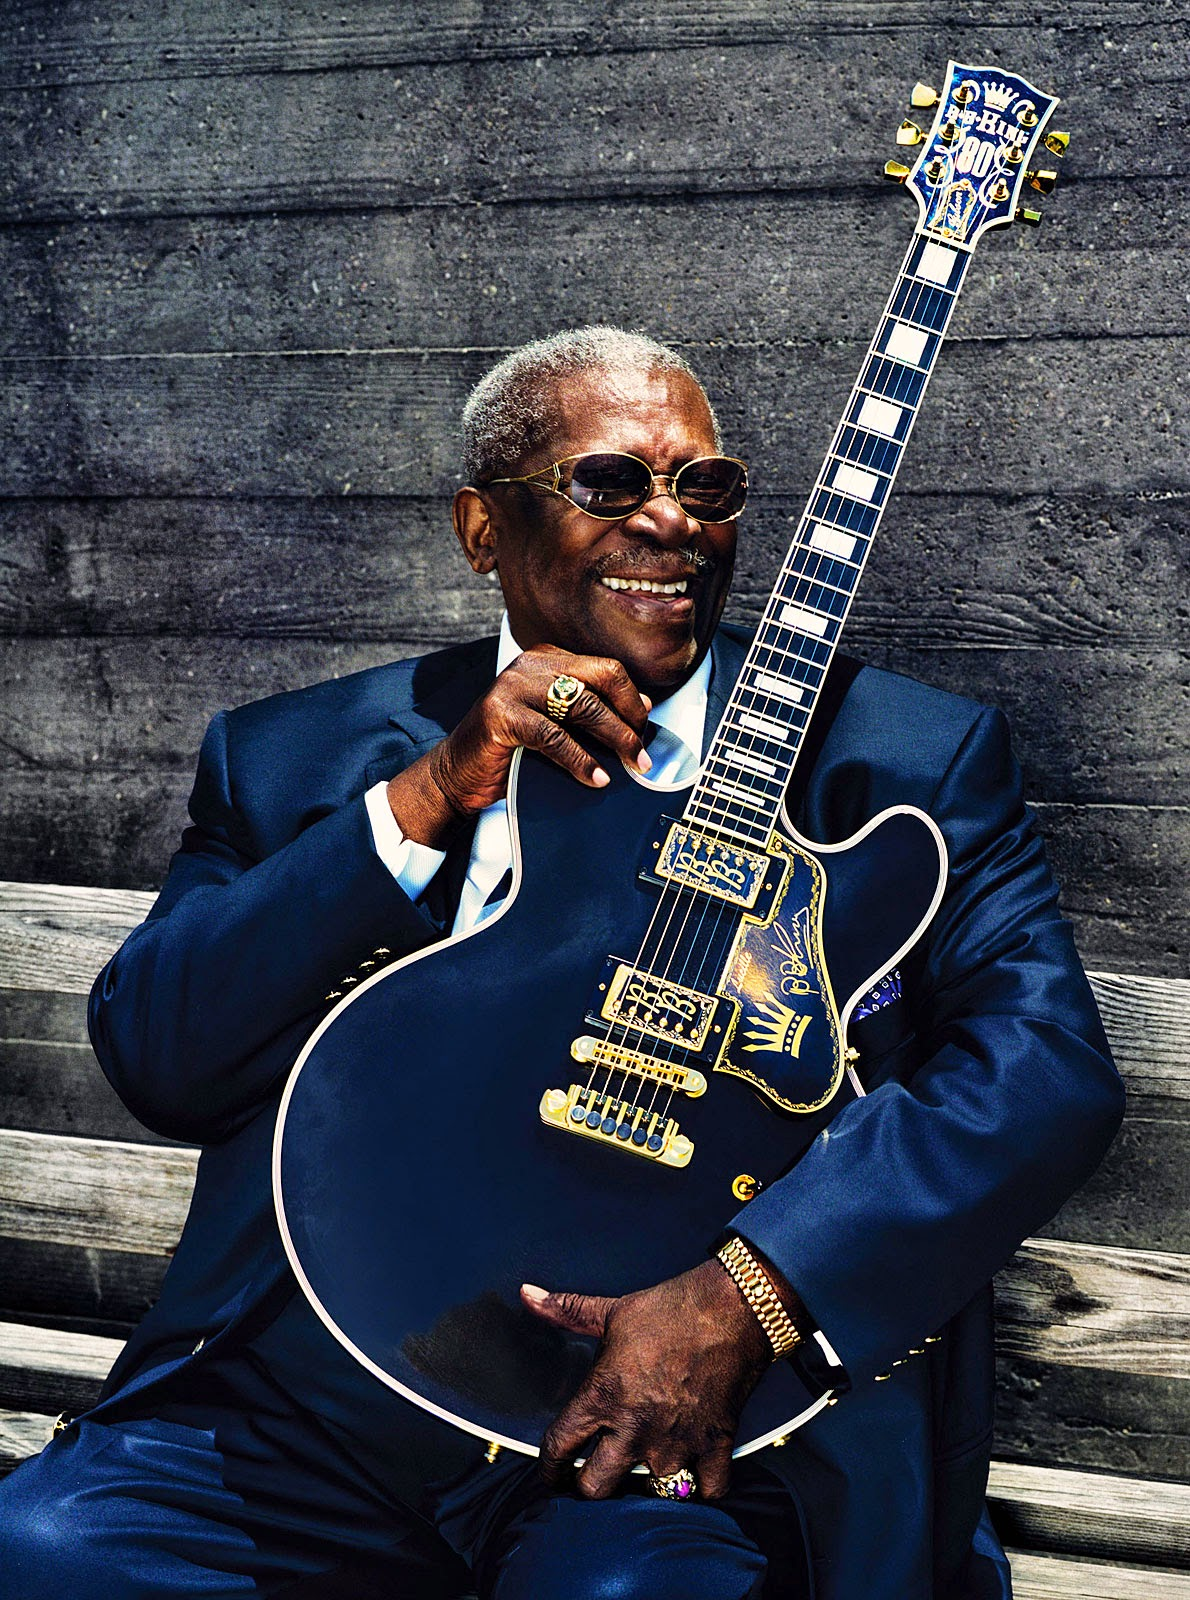 the life and times of riley b king Audience reviews for bb king: the life of riley a fitting and wonderful tribute to one of the greatest artists of all time as with most legendary blues performers, the talent seems god givenout.